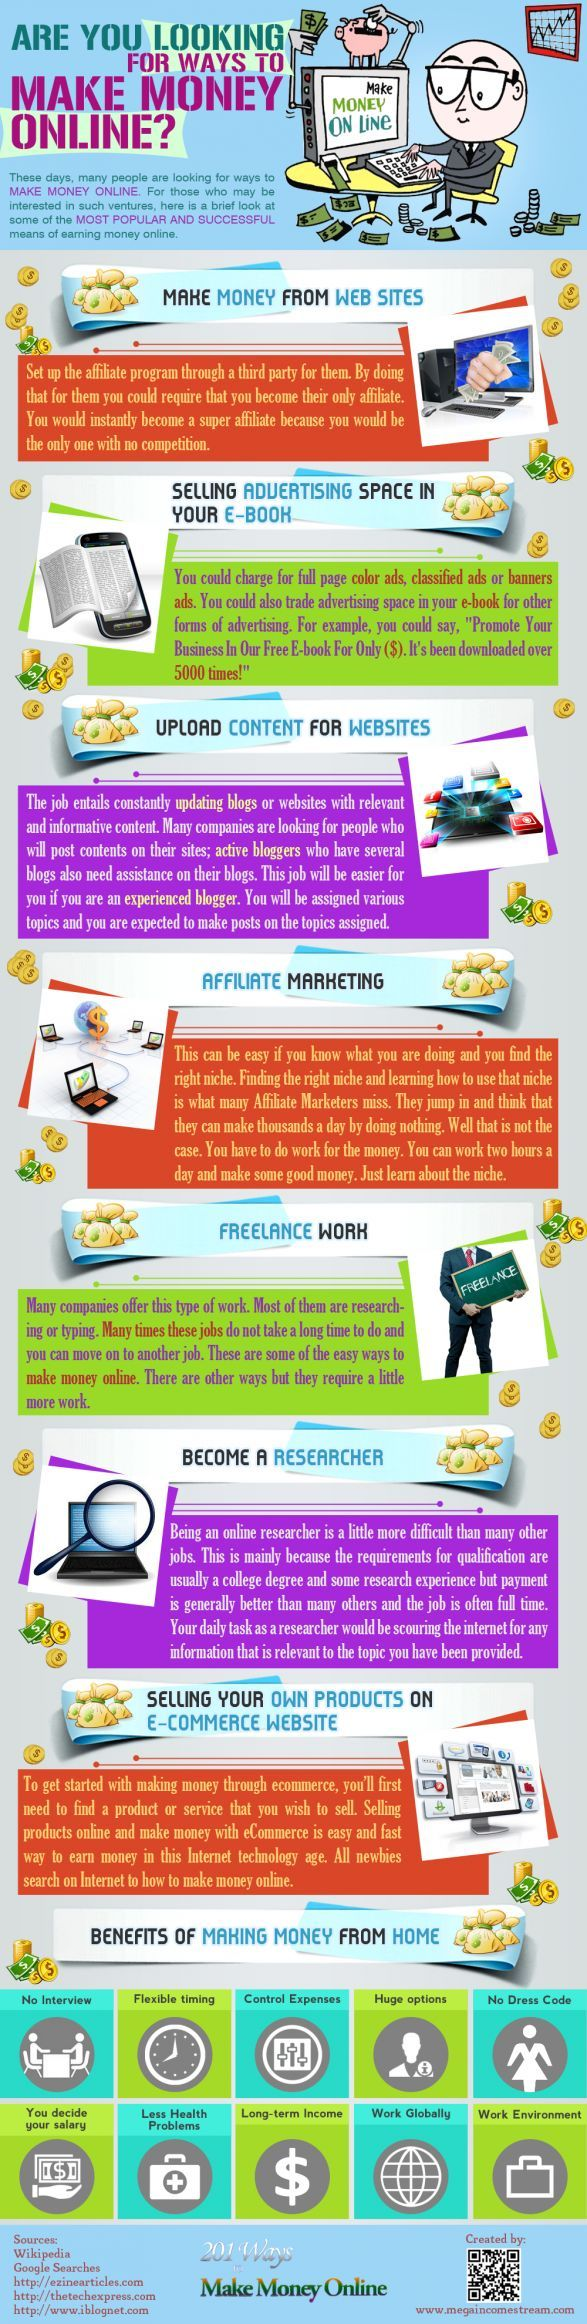 26 best images about Online Jobs for Teens on Pinterest